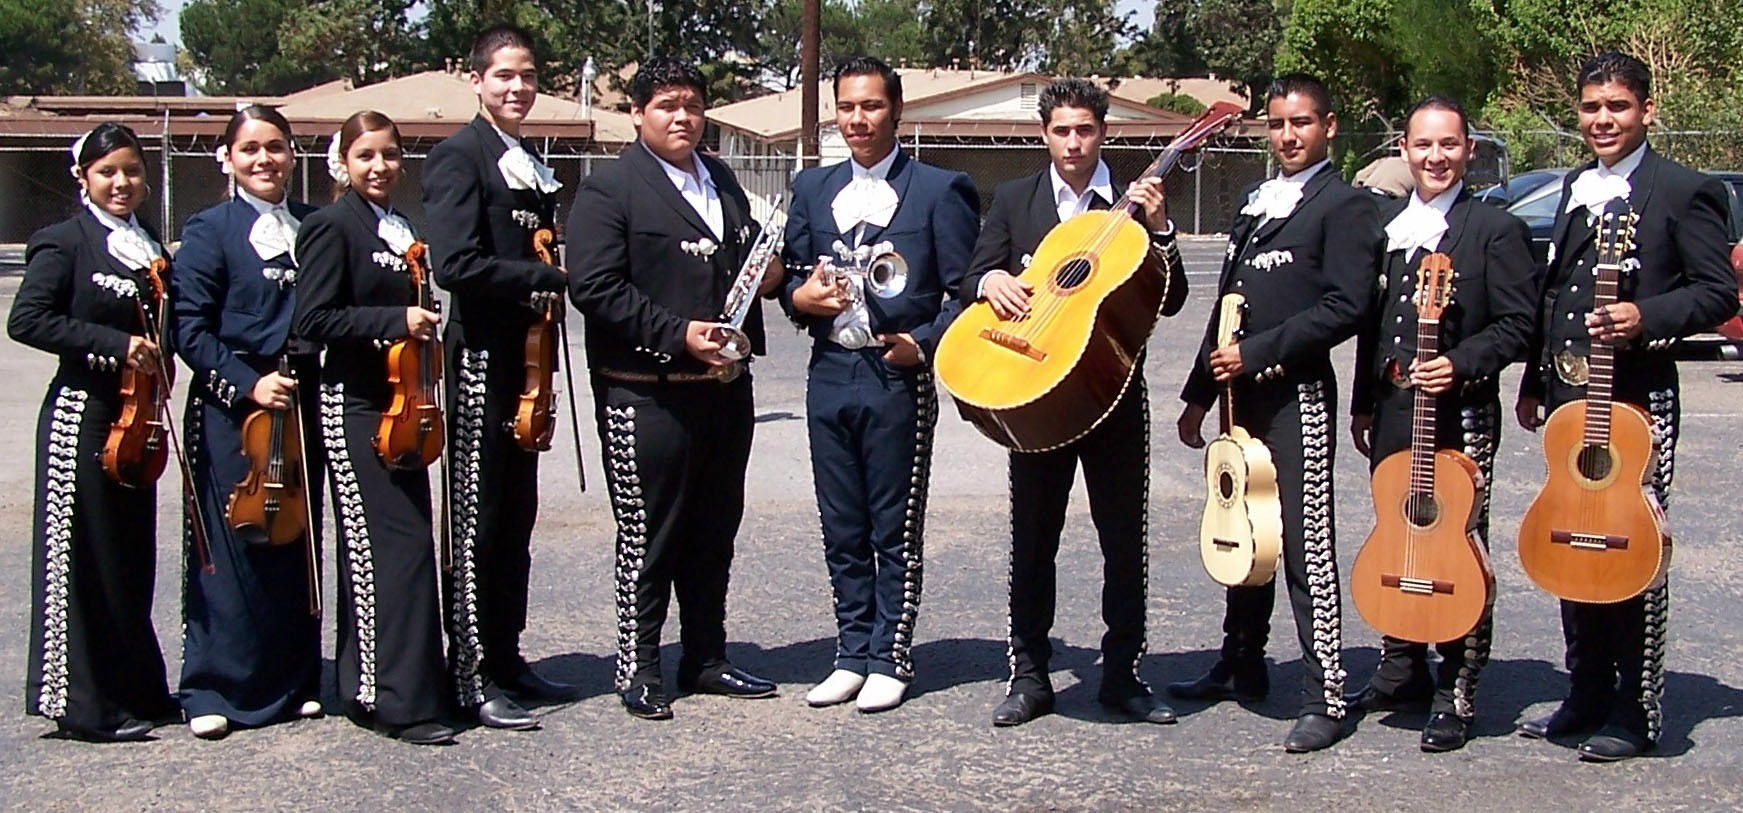 Mexican Citizens  >> Mariachi Music: Showcase of Mexican Culture | Mexico News